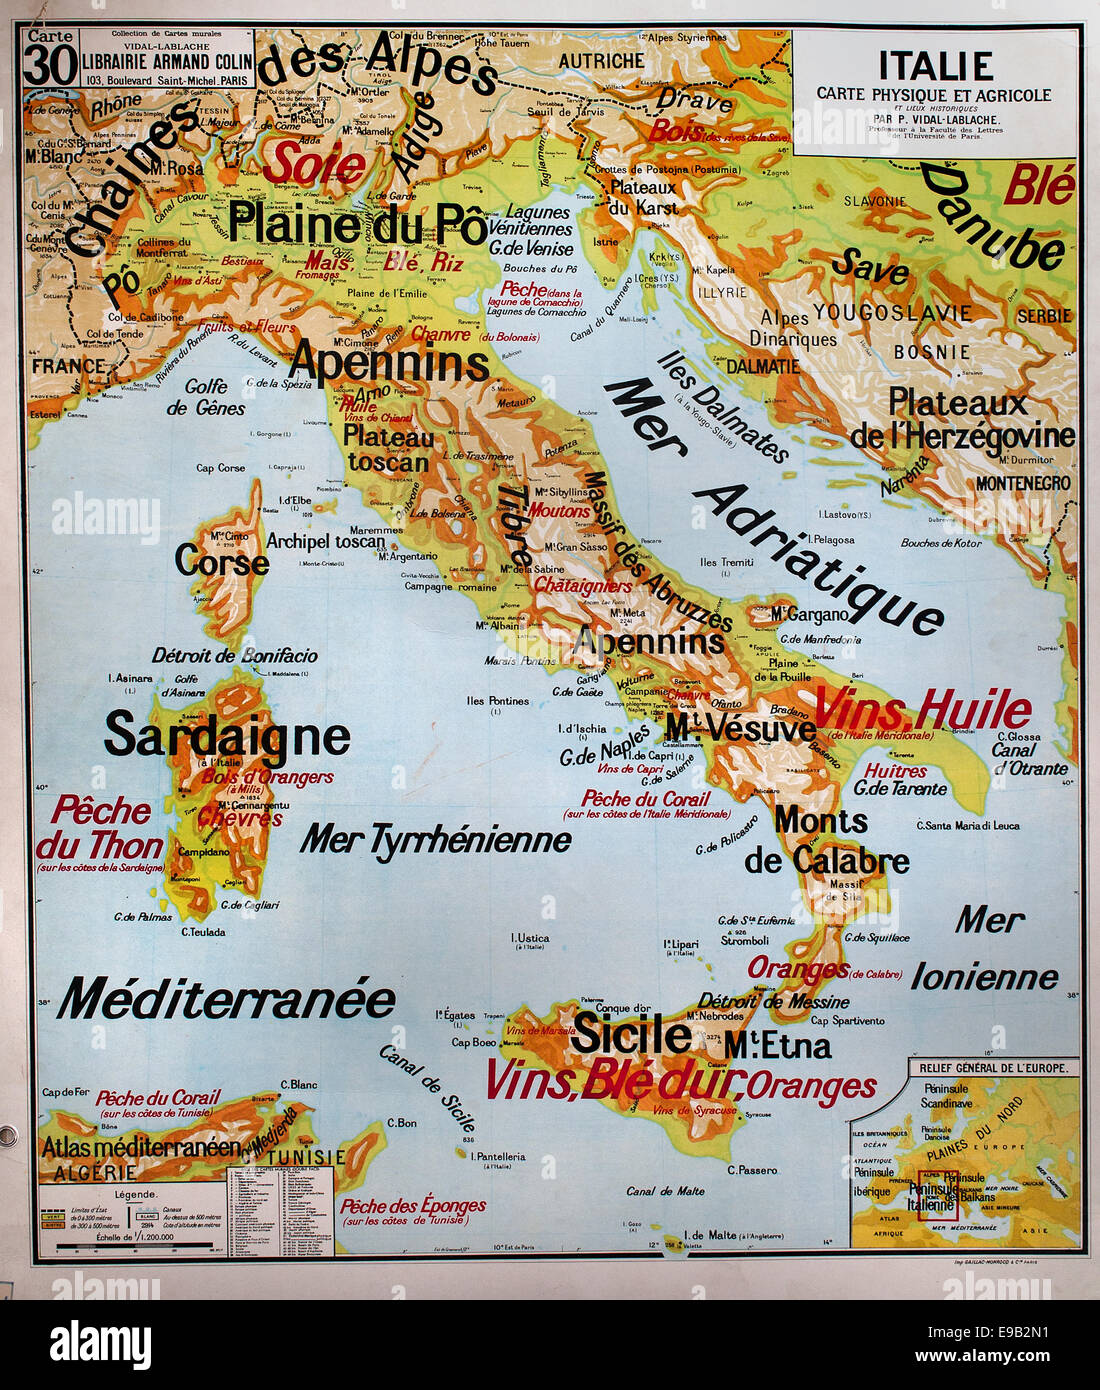 Historic map italy stock photos historic map italy stock images old school world wall map italy mediterranean french cartography stock image gumiabroncs Gallery